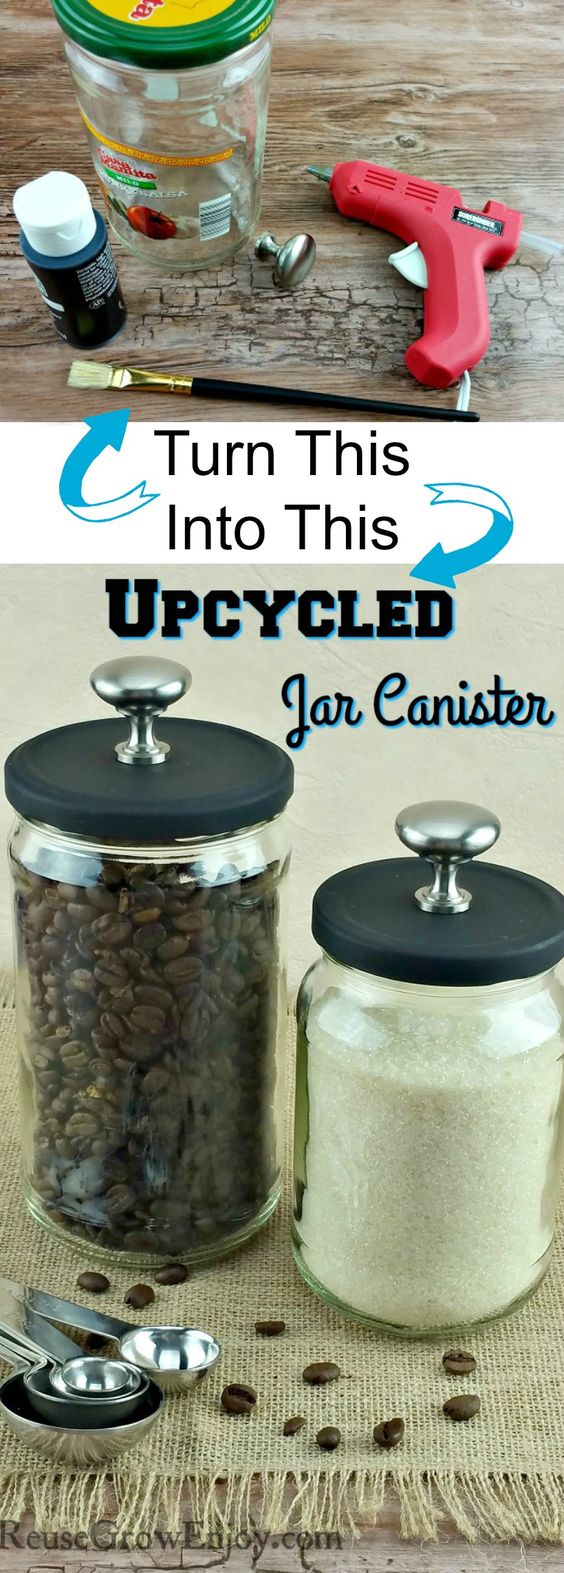 Upcycled Jar Canister.